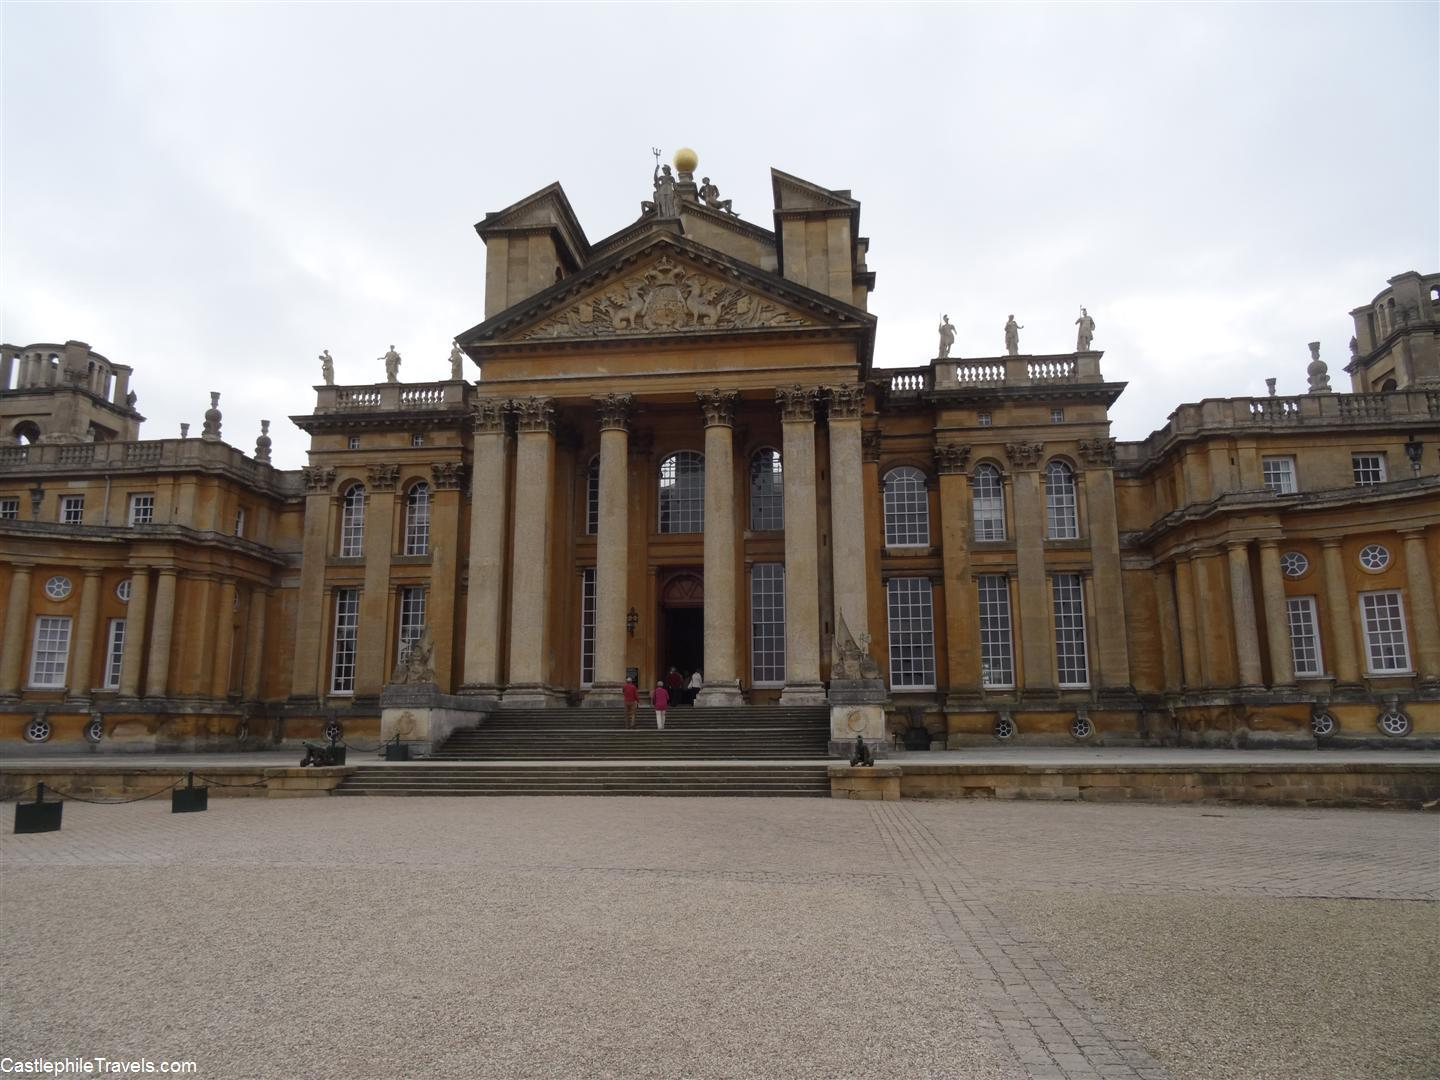 The courtyard of Blenheim Palace